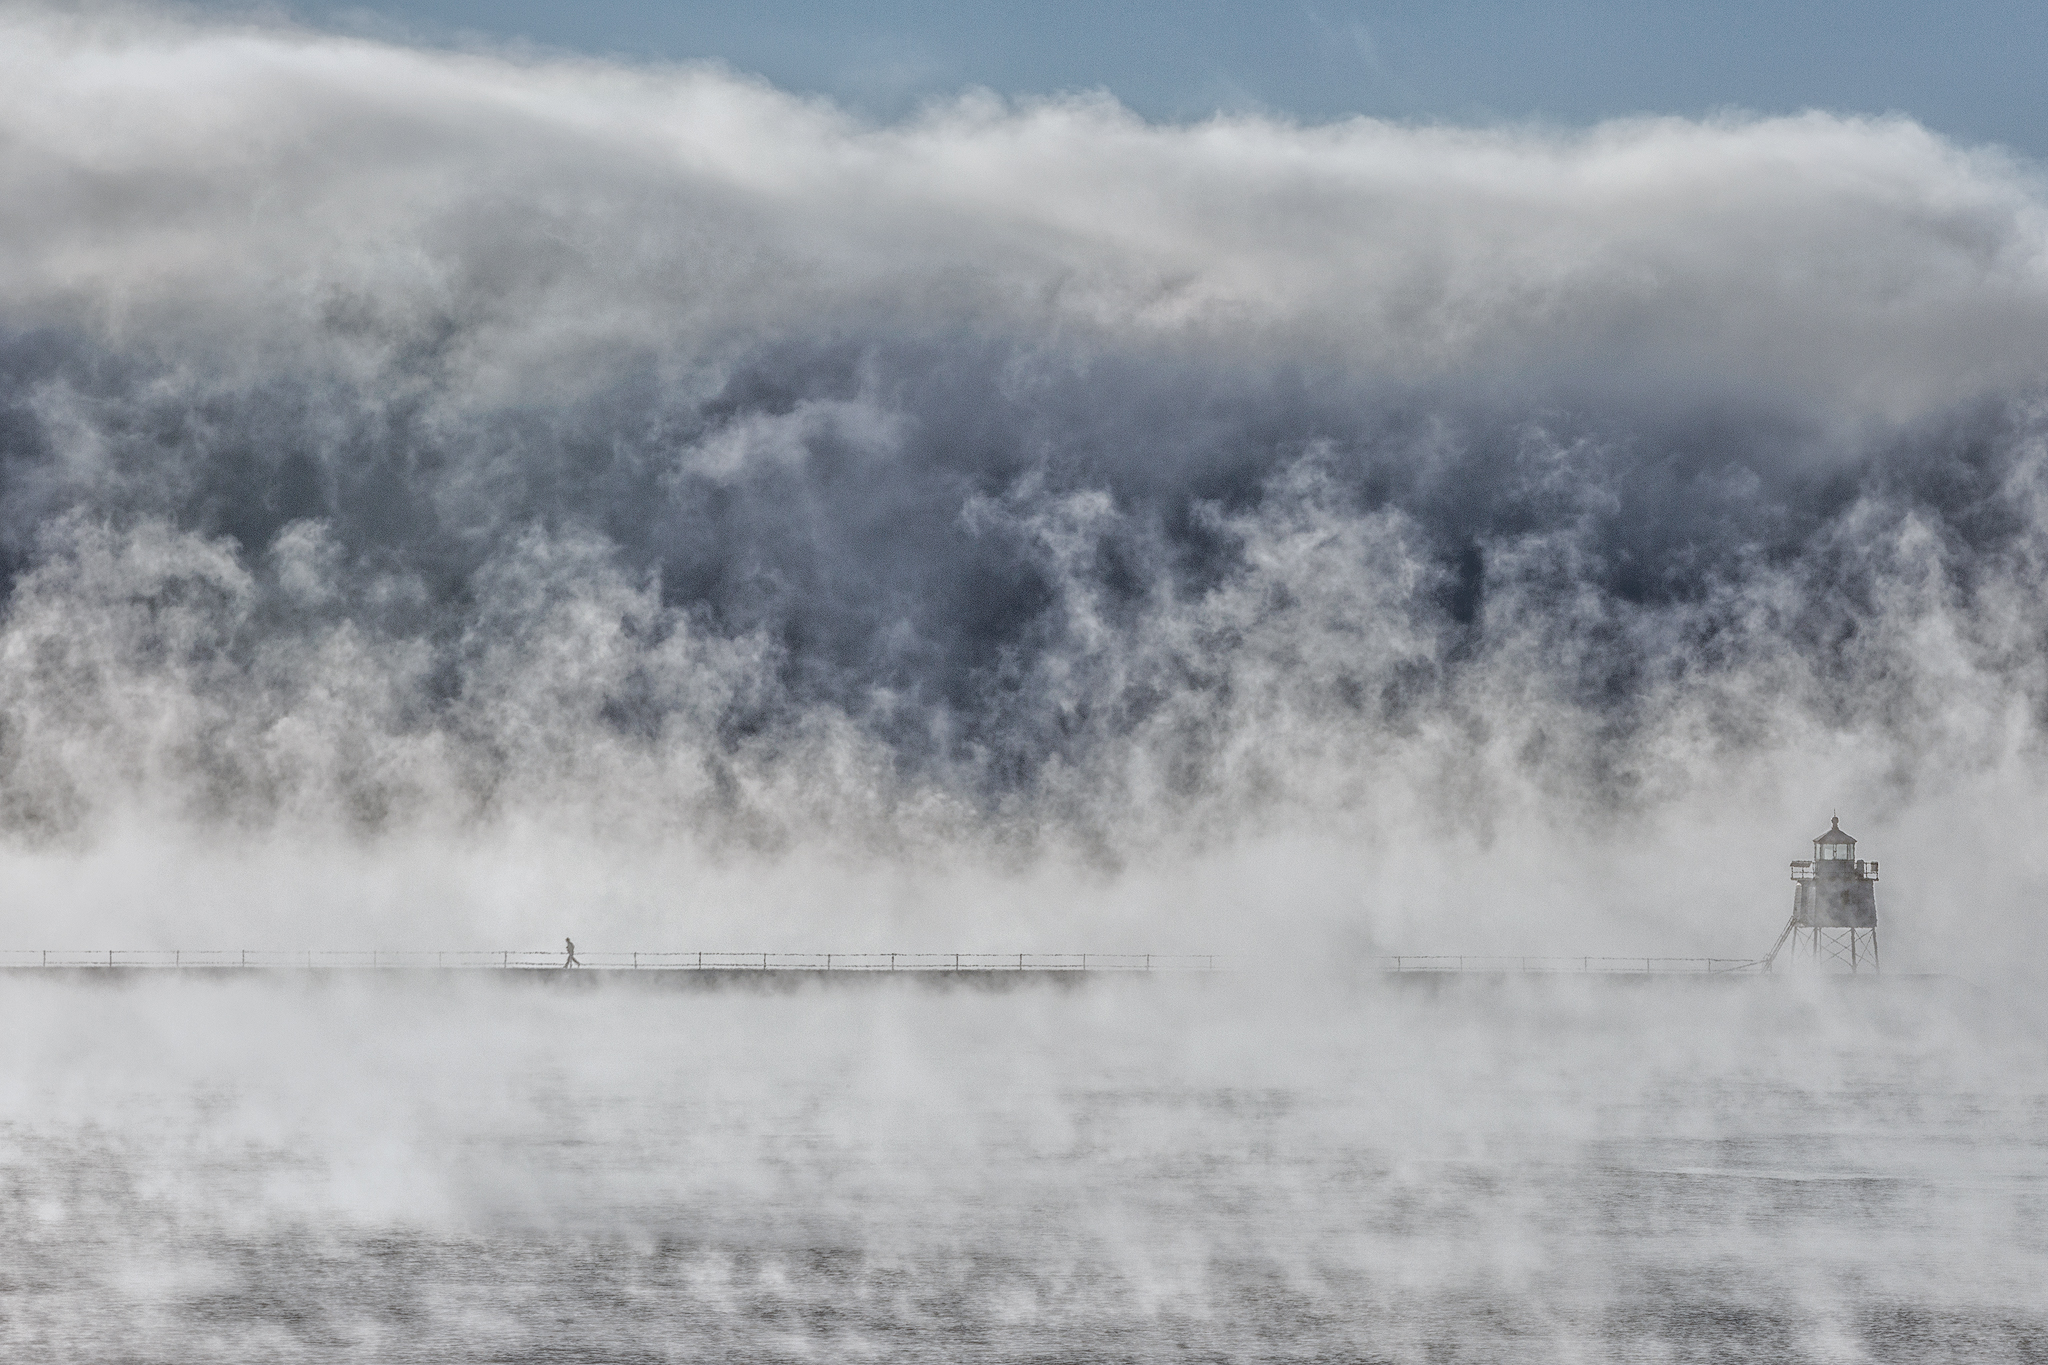 Sea smoke rises off the harbor and around the lighthouse at Two Harbors on a -15 degree morning.